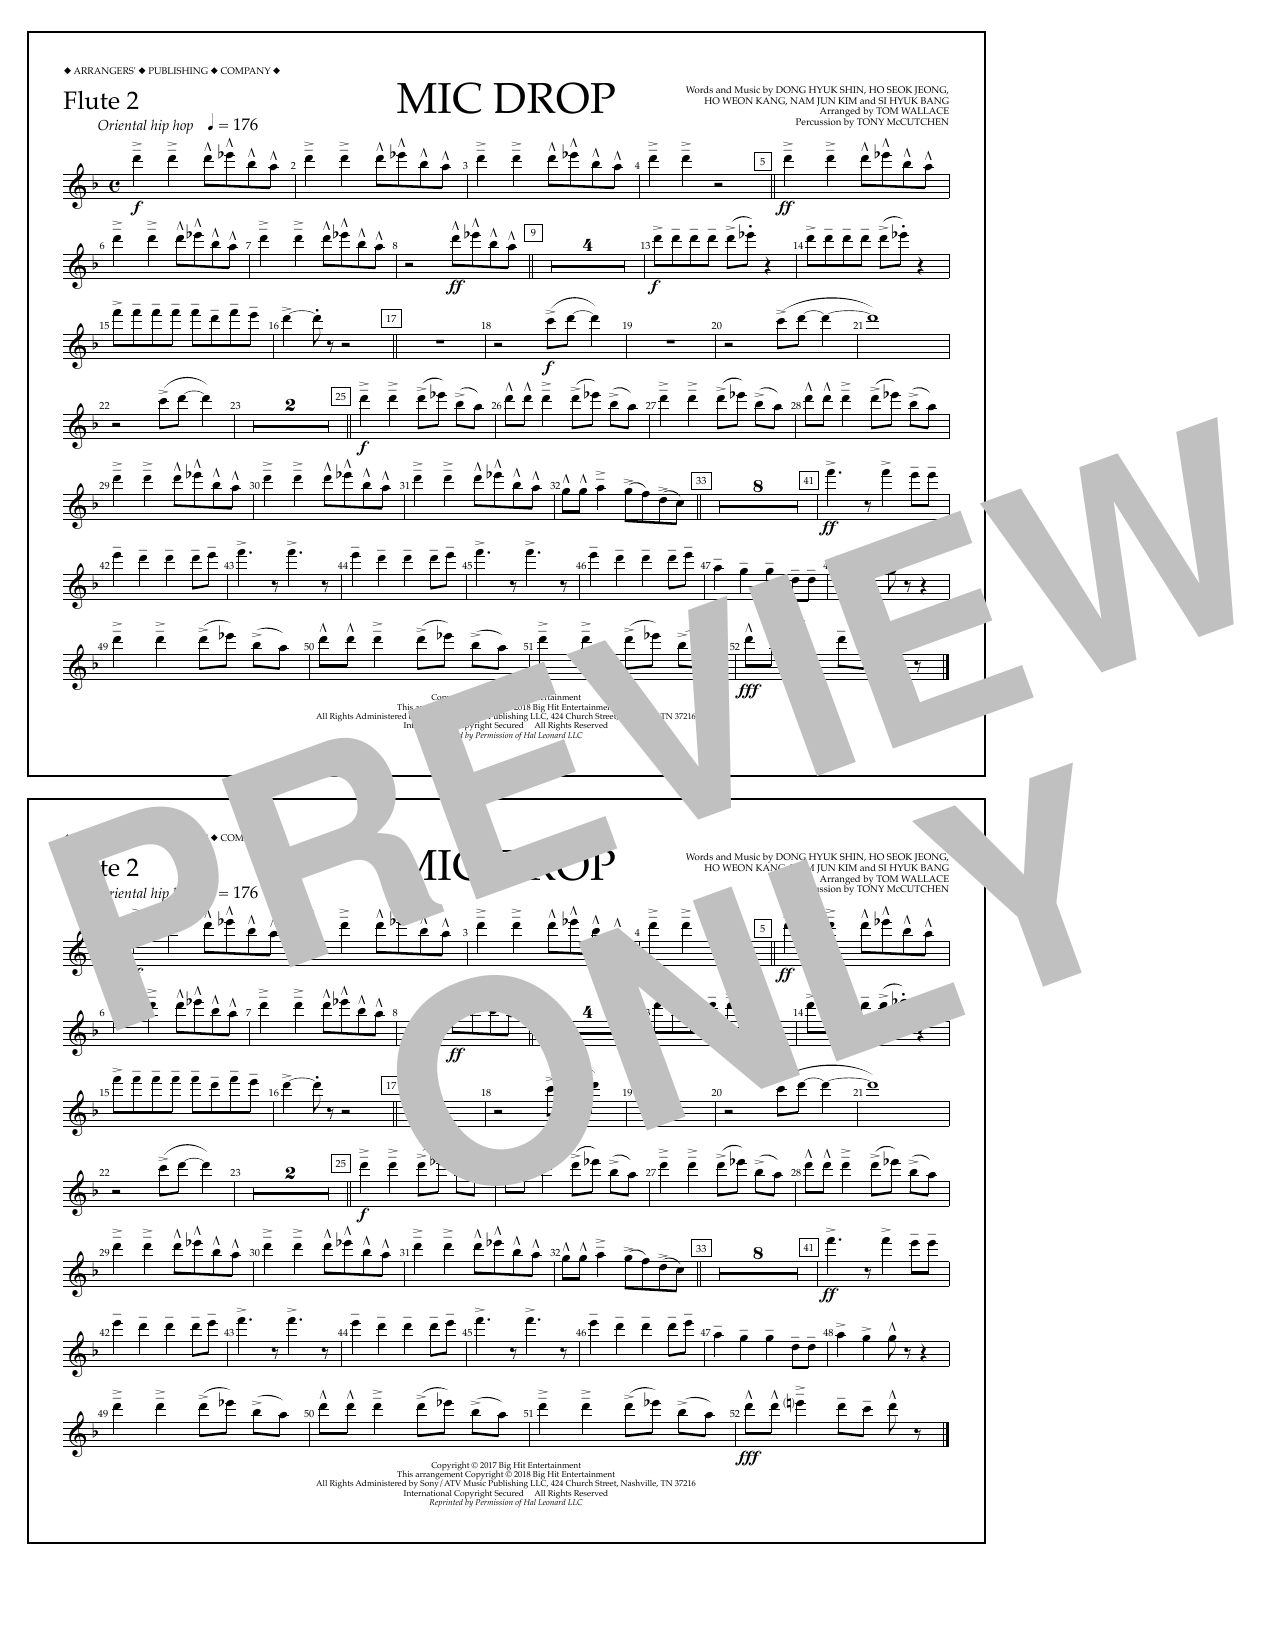 Download Tom Wallace 'Mic Drop - Flute 2' Digital Sheet Music Notes & Chords and start playing in minutes